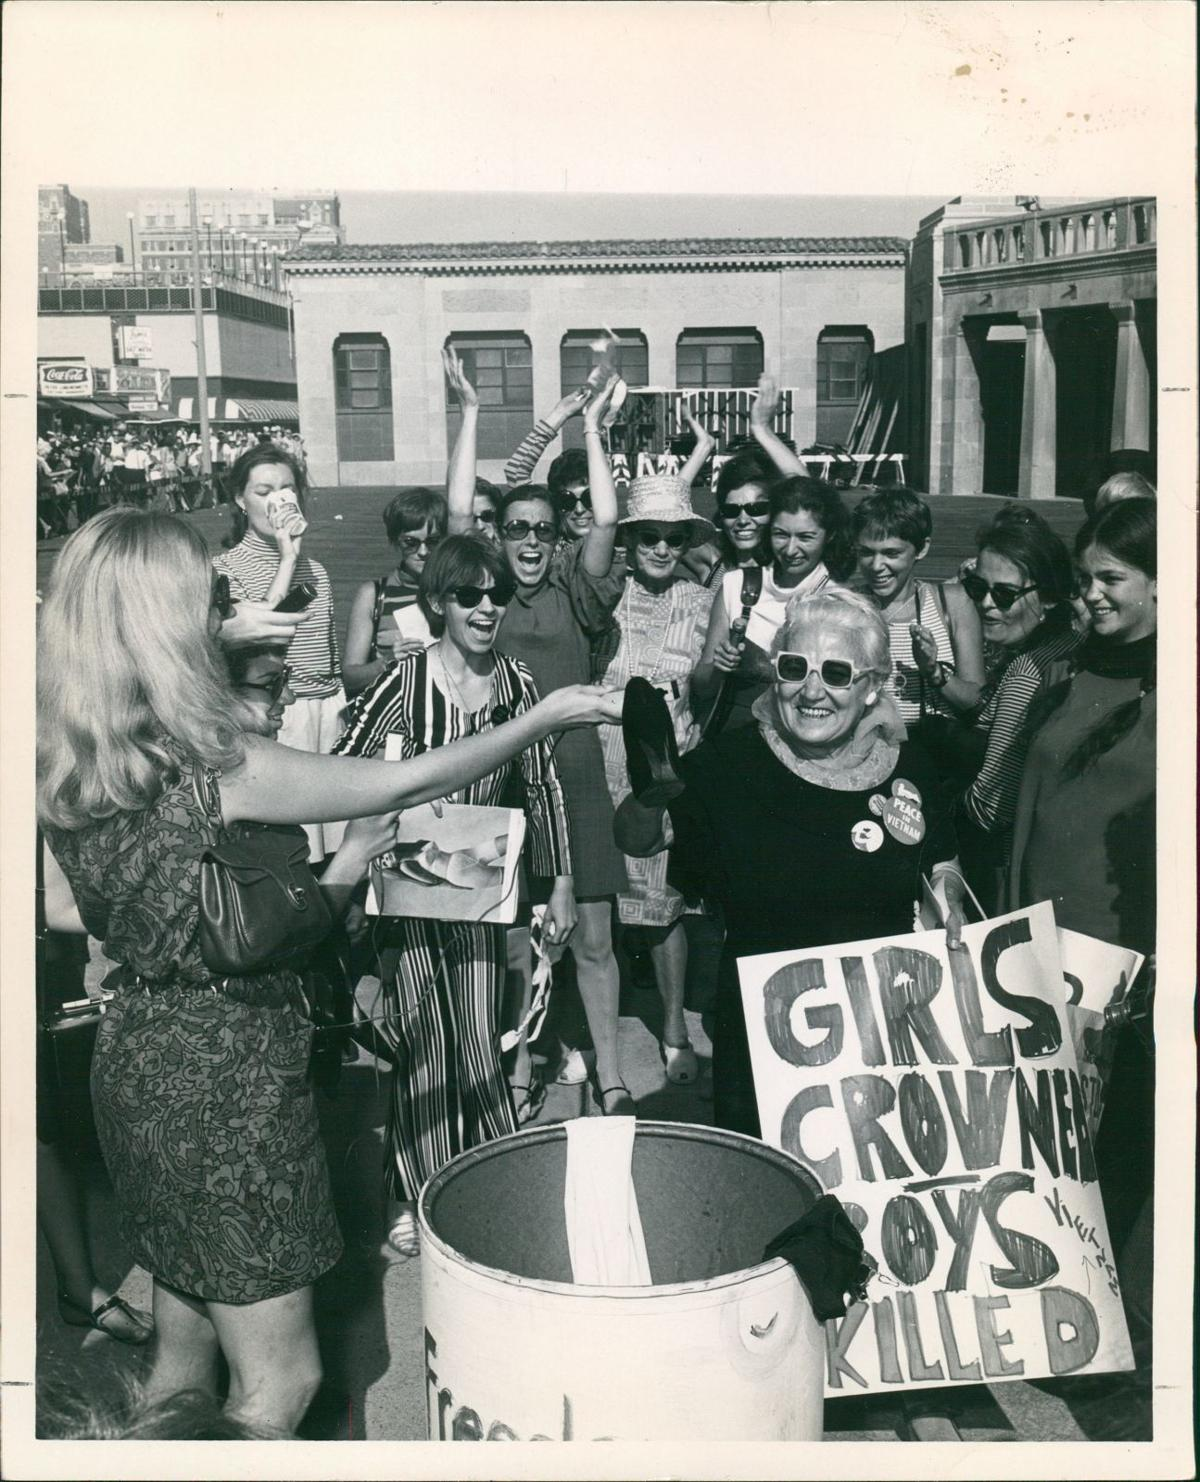 Miss America Protests 1968